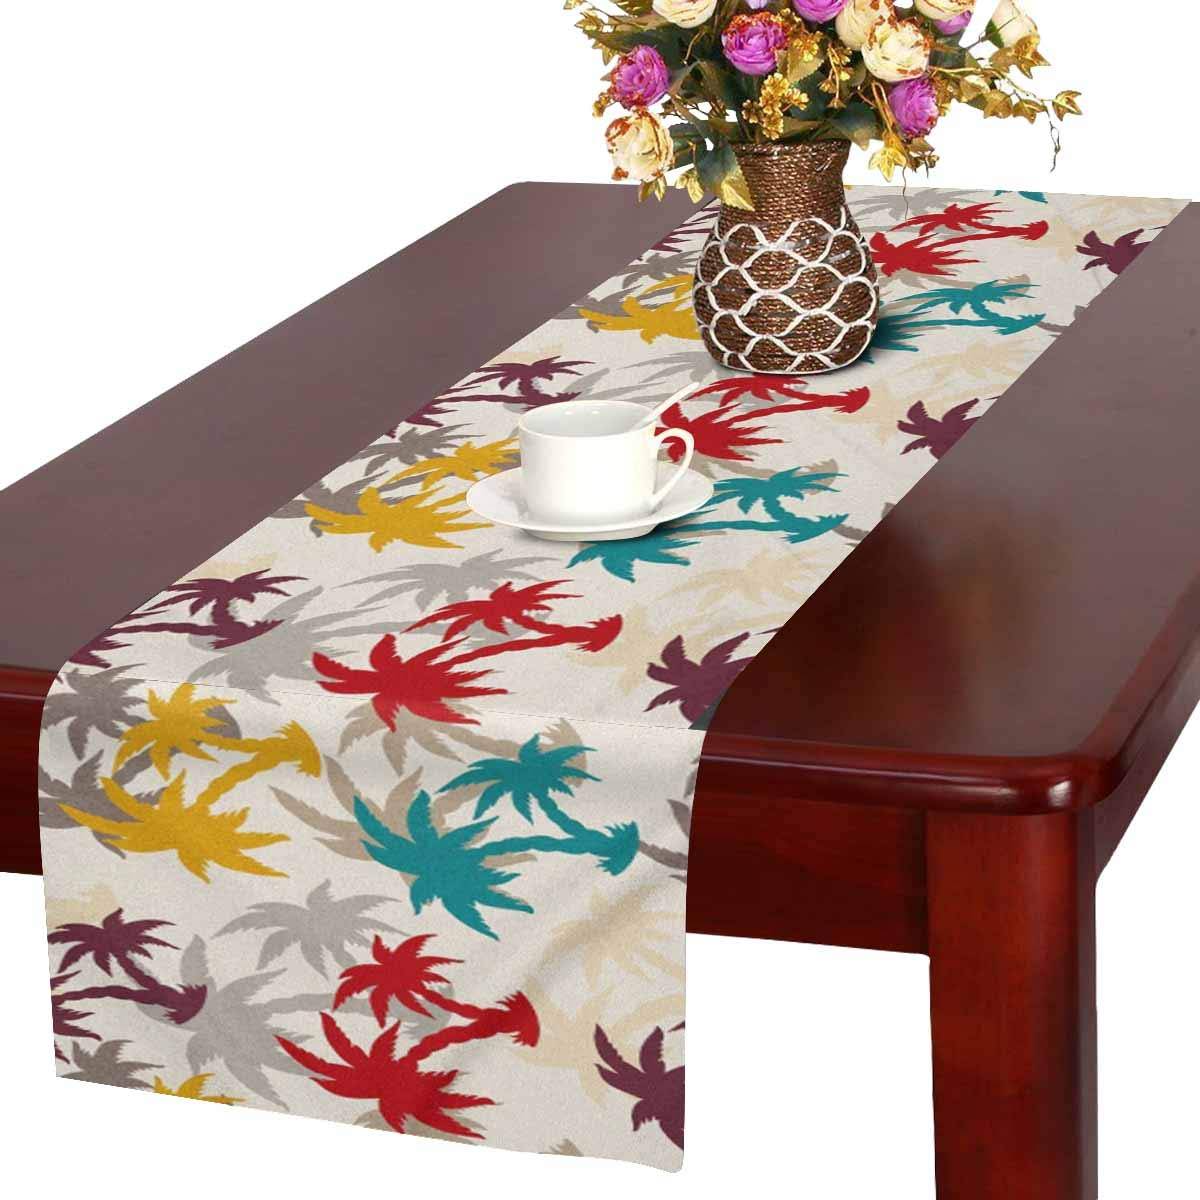 MKHERT Vintage Silhouette Of Tropical Palm Leaves Table